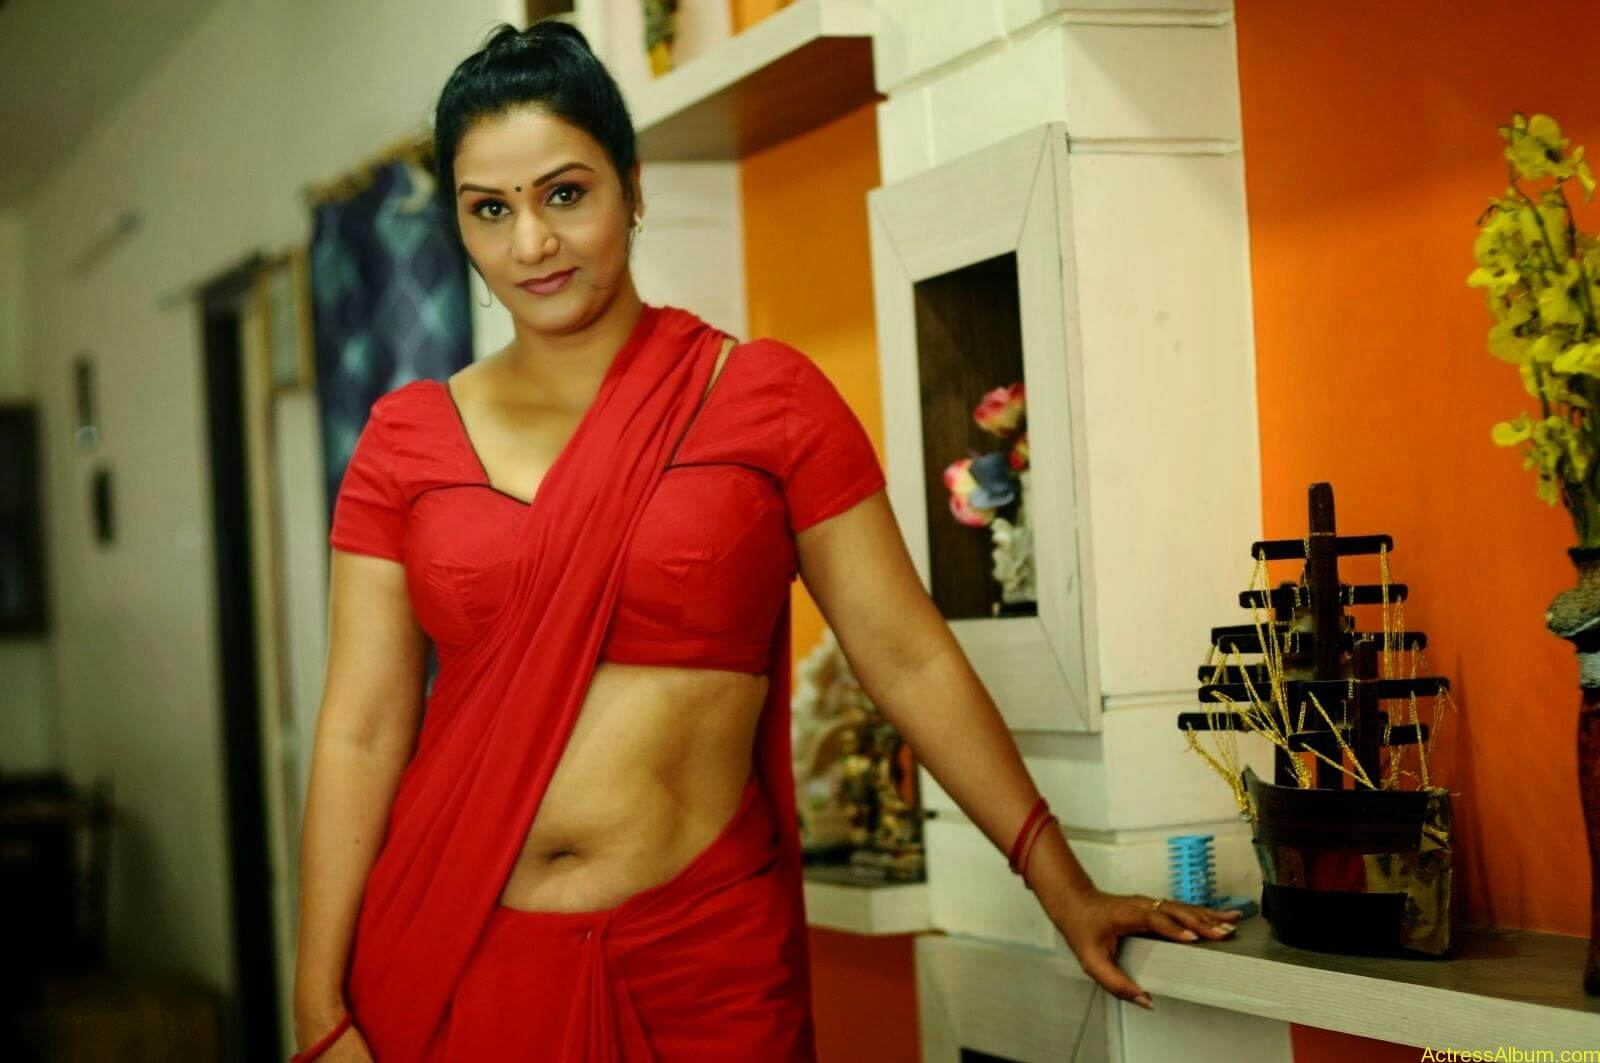 ACTRESS APOORVA VERY HOT IN RED SAREE PHOTO COLLECTION 5